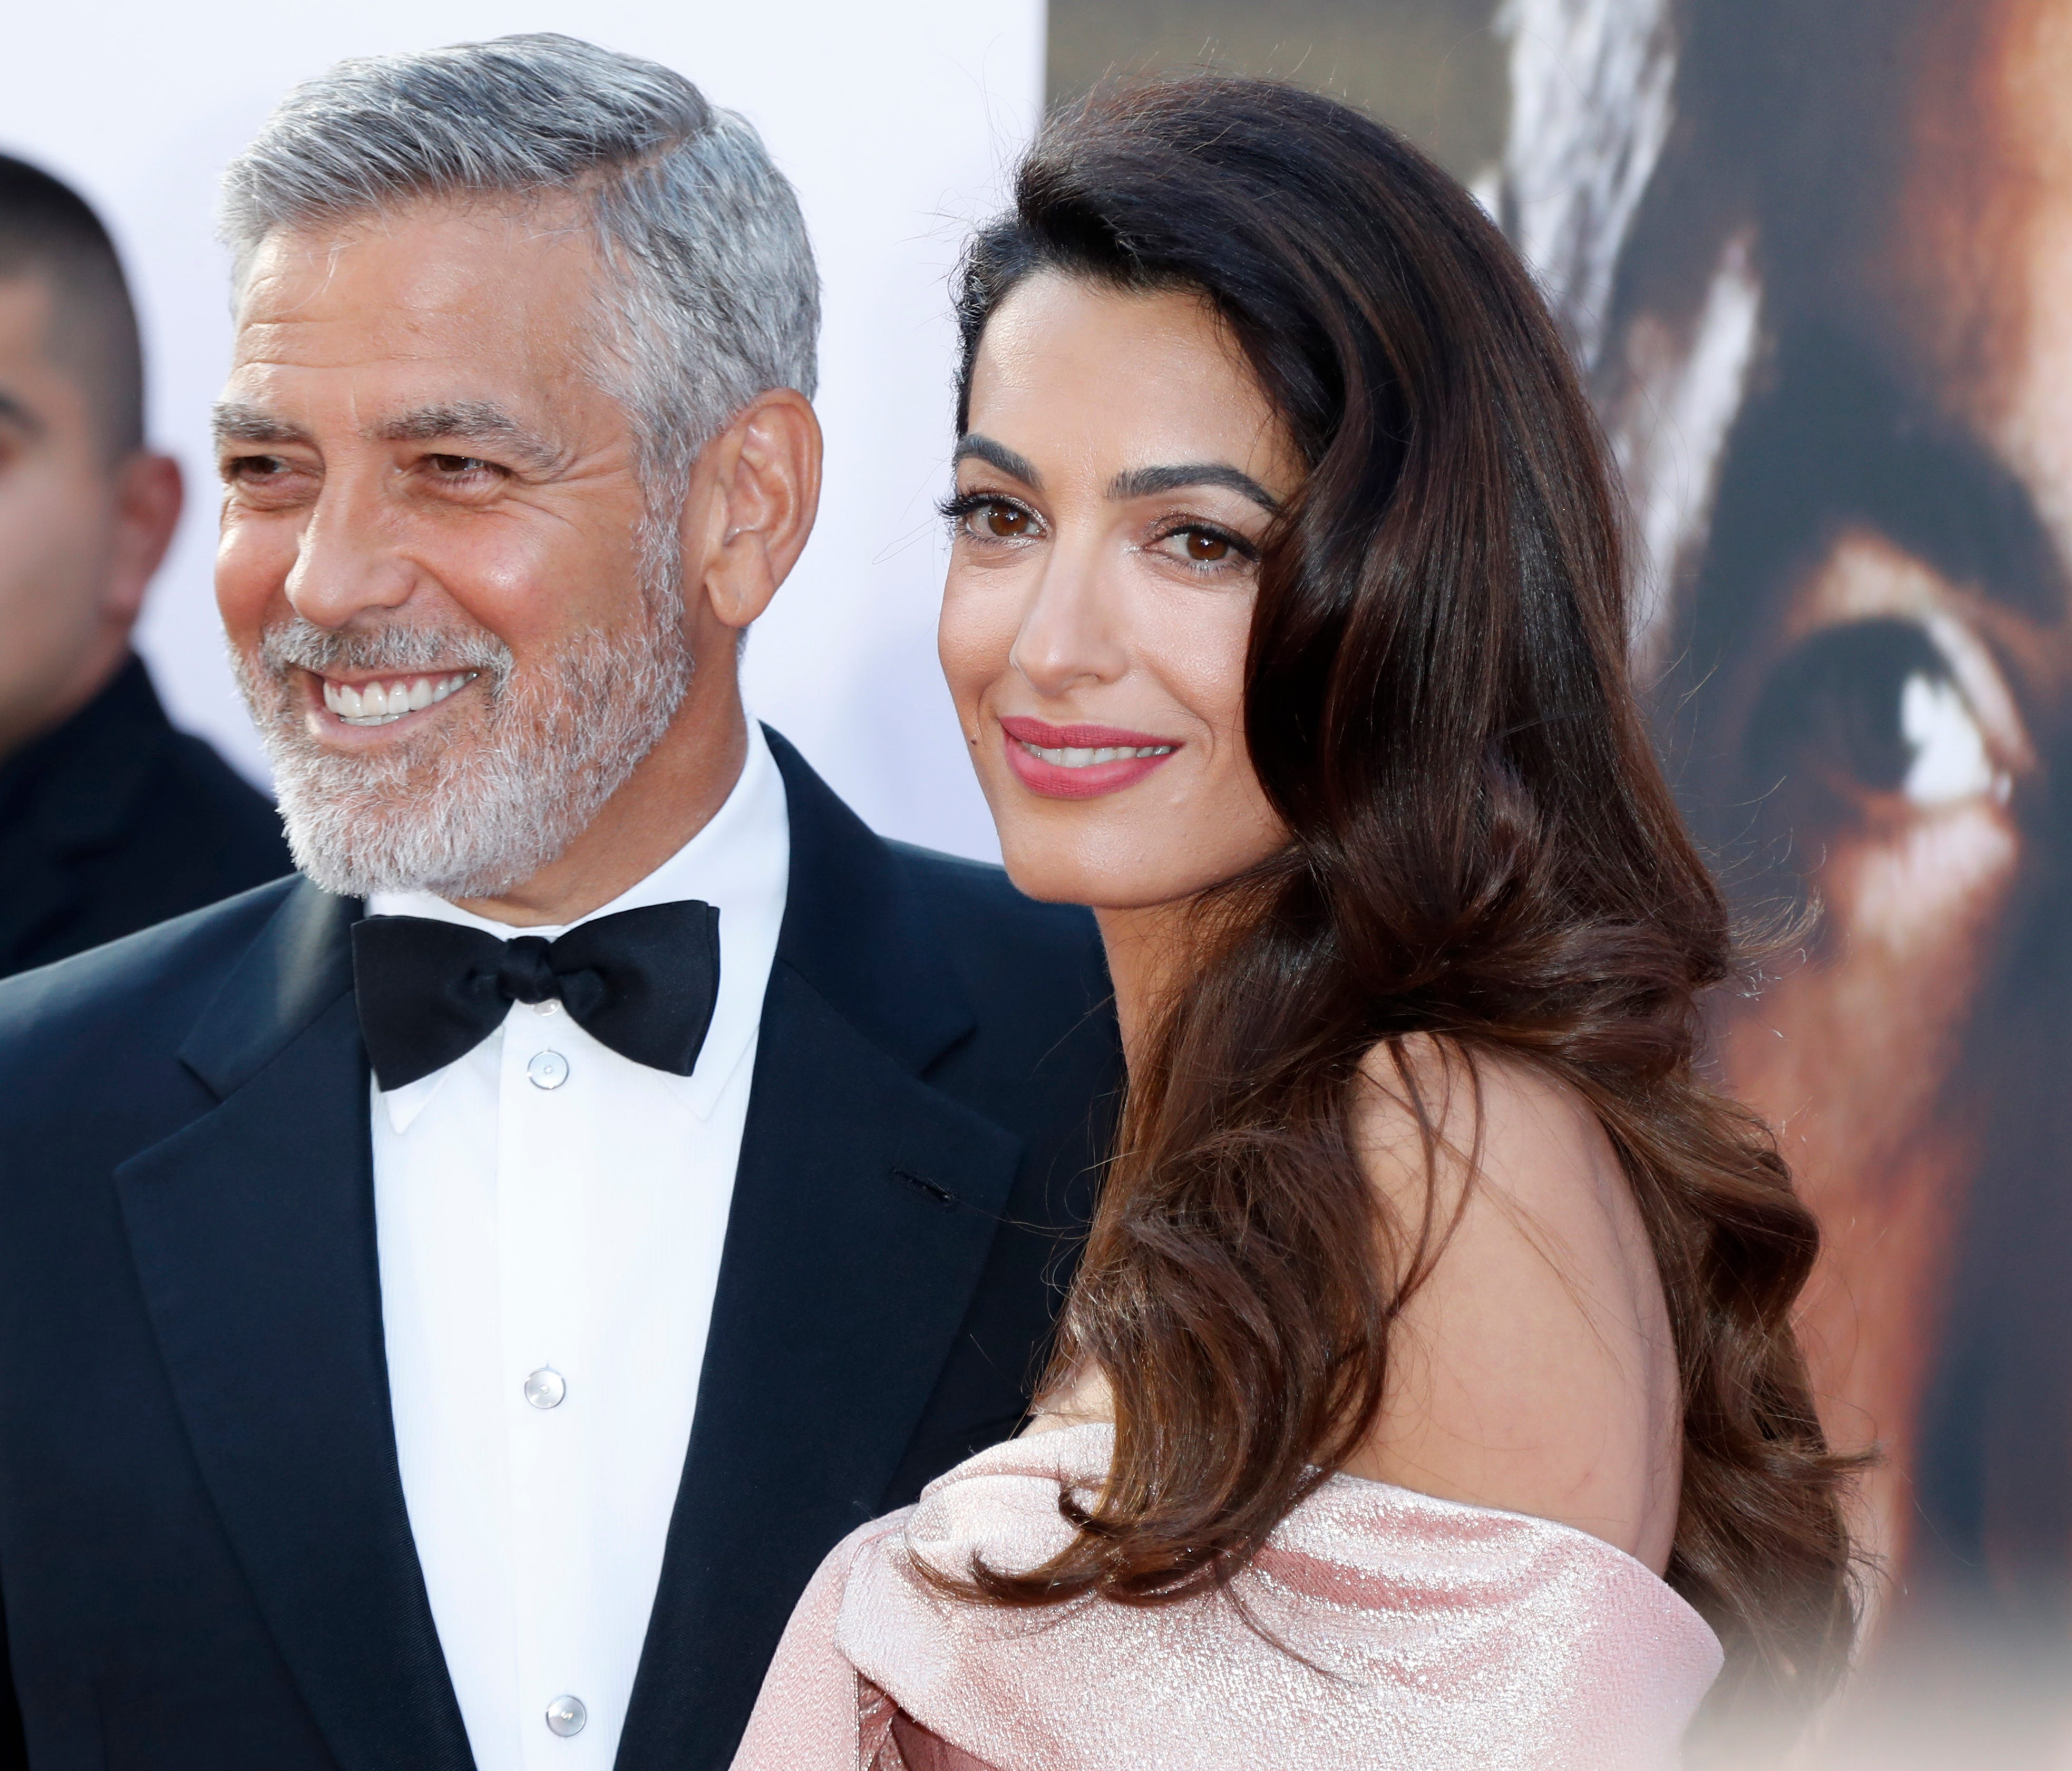 epa06792472 US actor George Clooney (L) and his wife Amal Clooney (R) arrive for the American Film Institute 46th Life Achievement Award Gala at the The Dolby Theatre in Hollywood, California, USA, 07 June 2018. The American Film Institute honored Ge